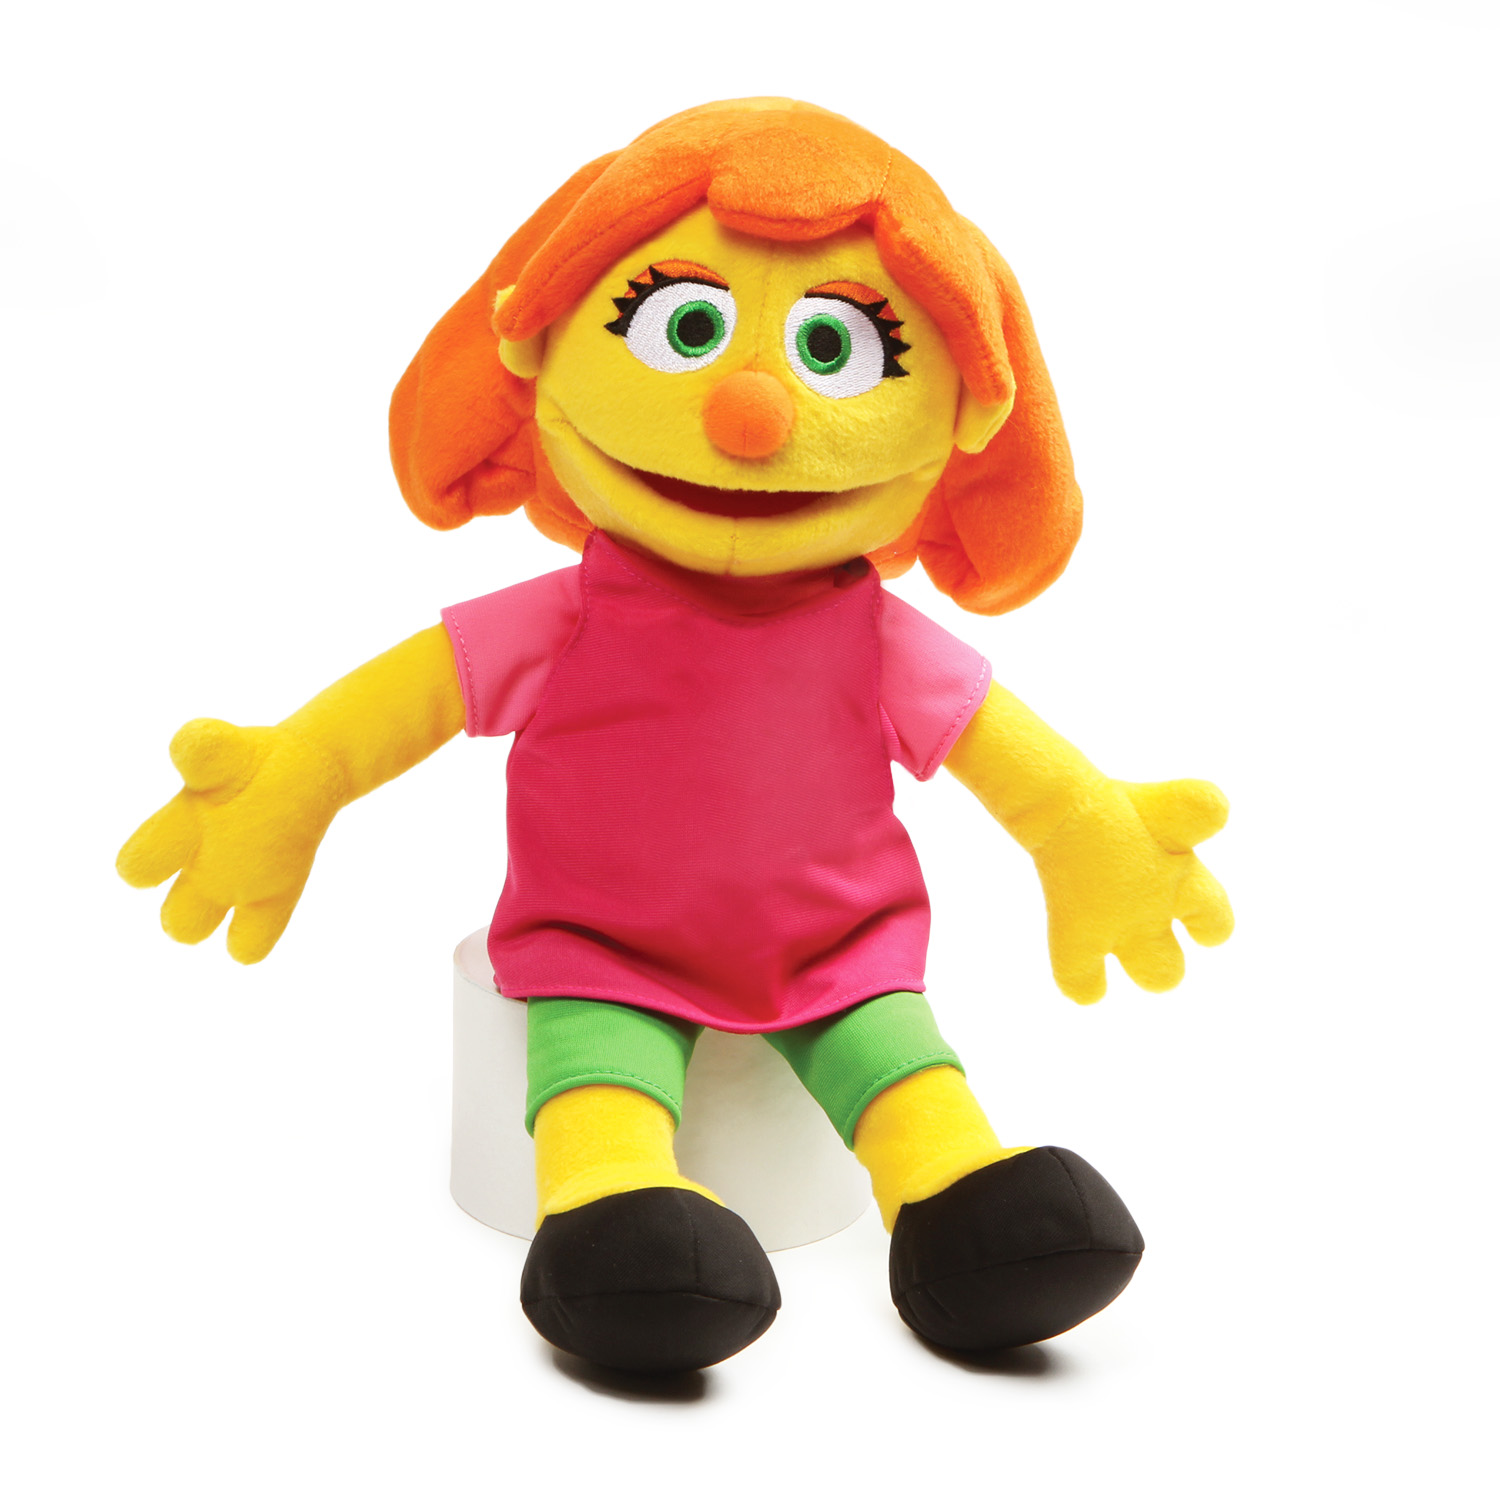 Plush Julia Doll From Sesame Street Giveaway!